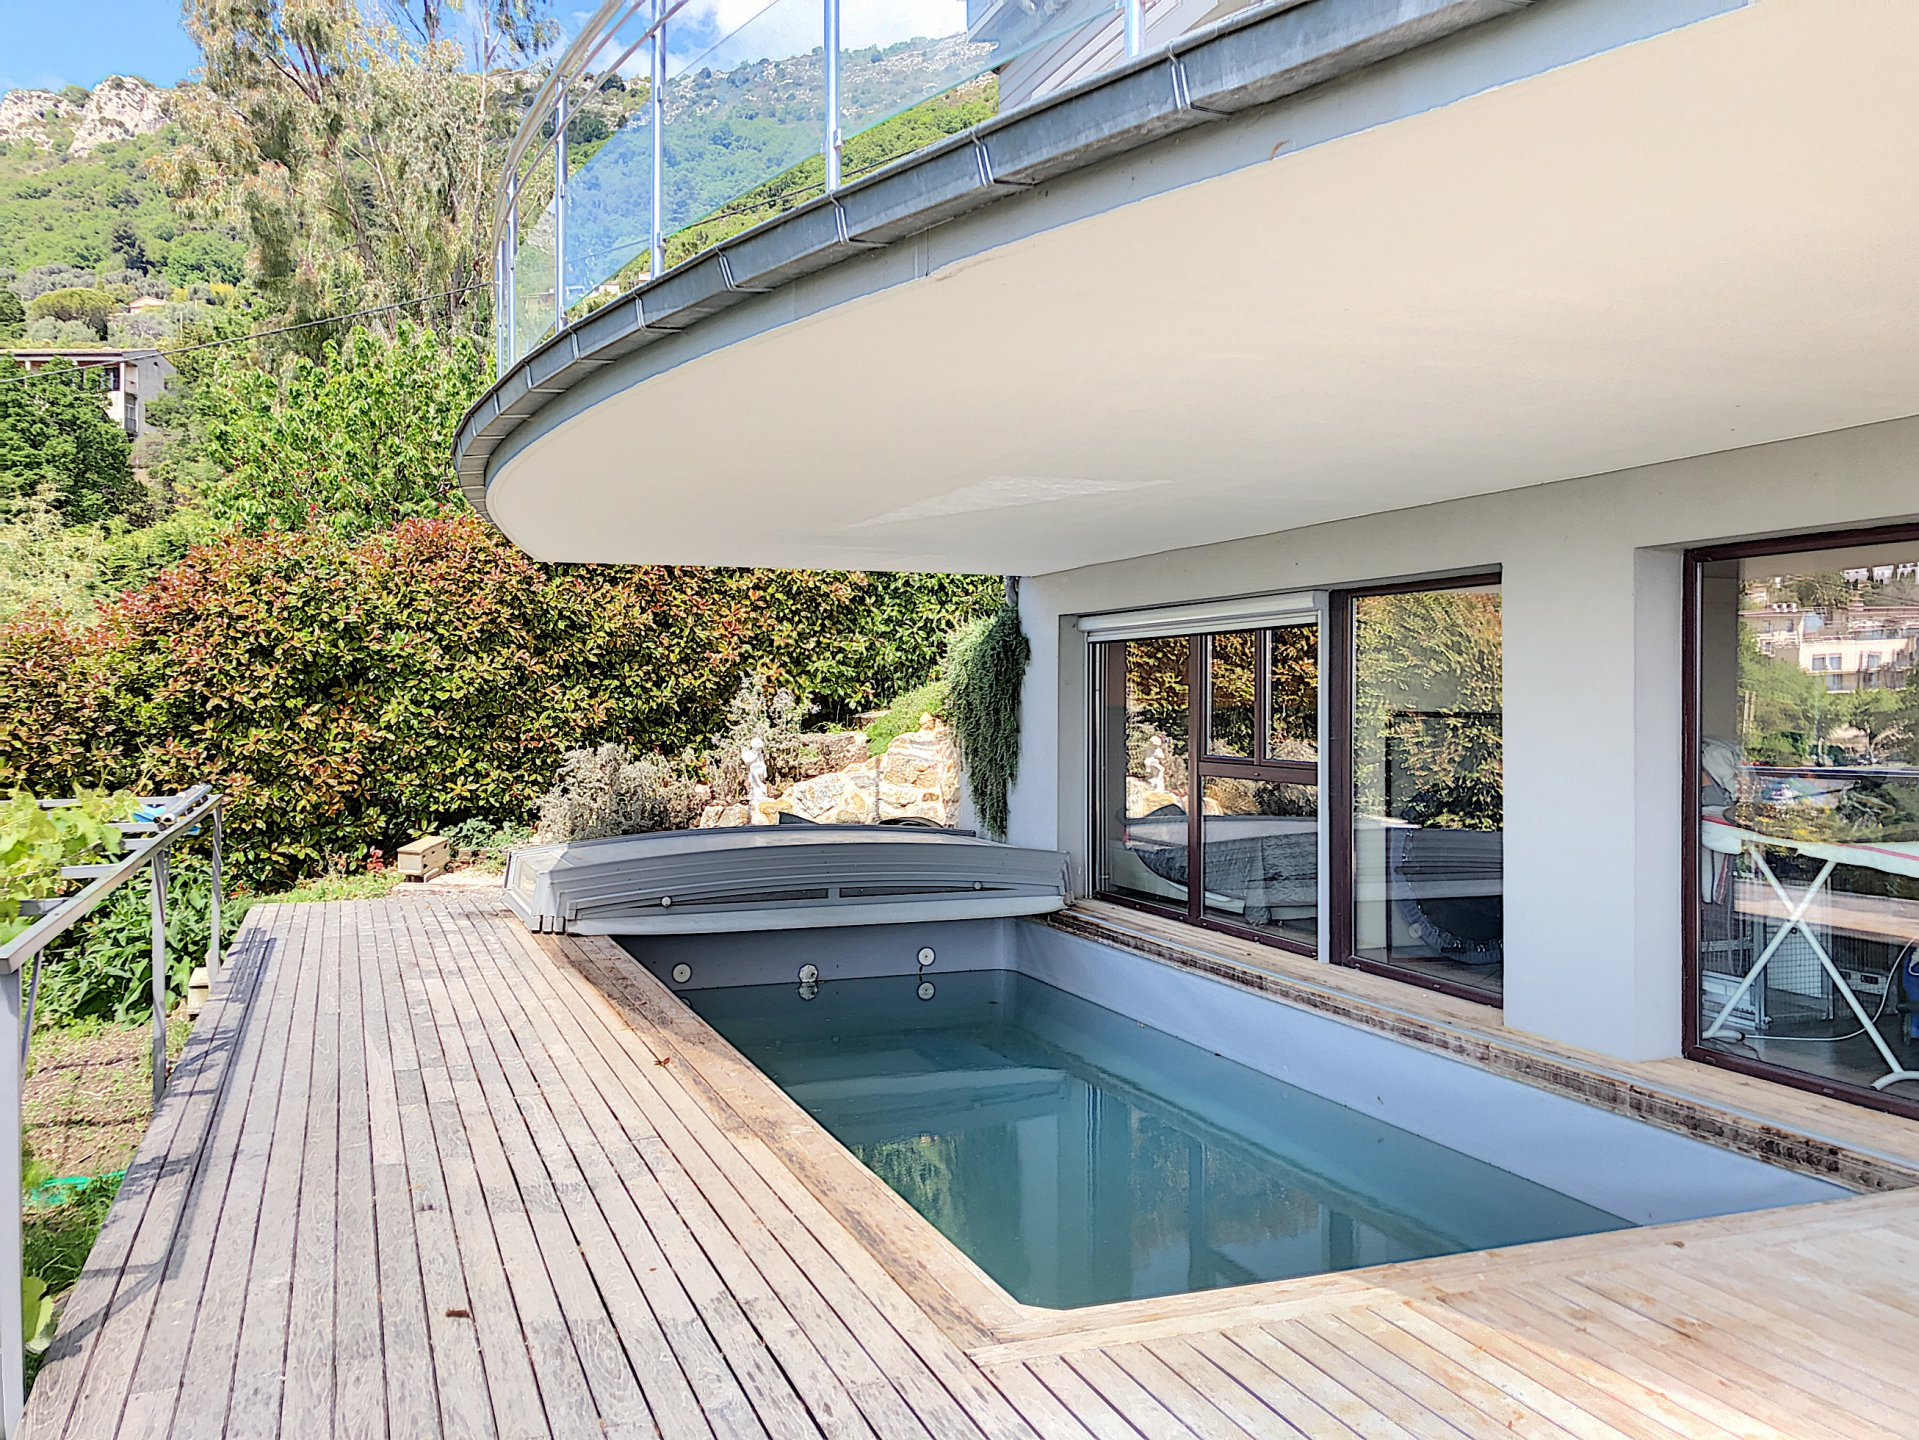 Vence (06140) - Villa contemporaine - 250m2 - Piscine